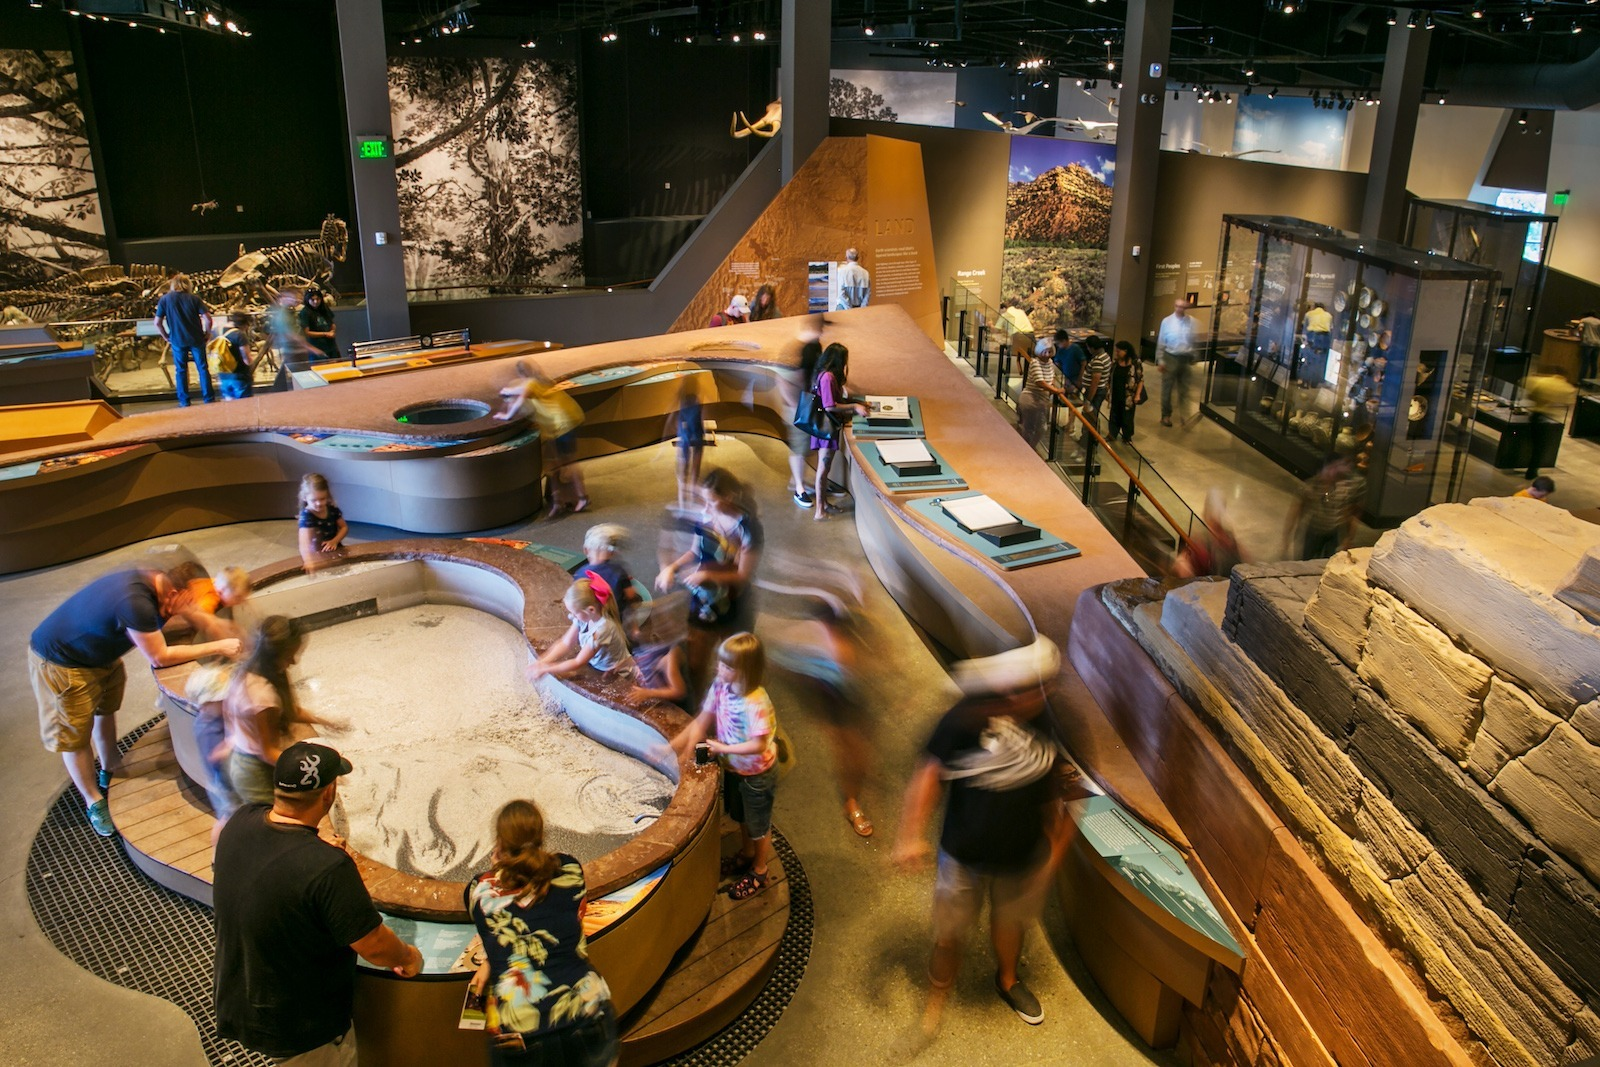 Exhibits at the Natural History Museum of Utah, one of Salt Lake City's attractions